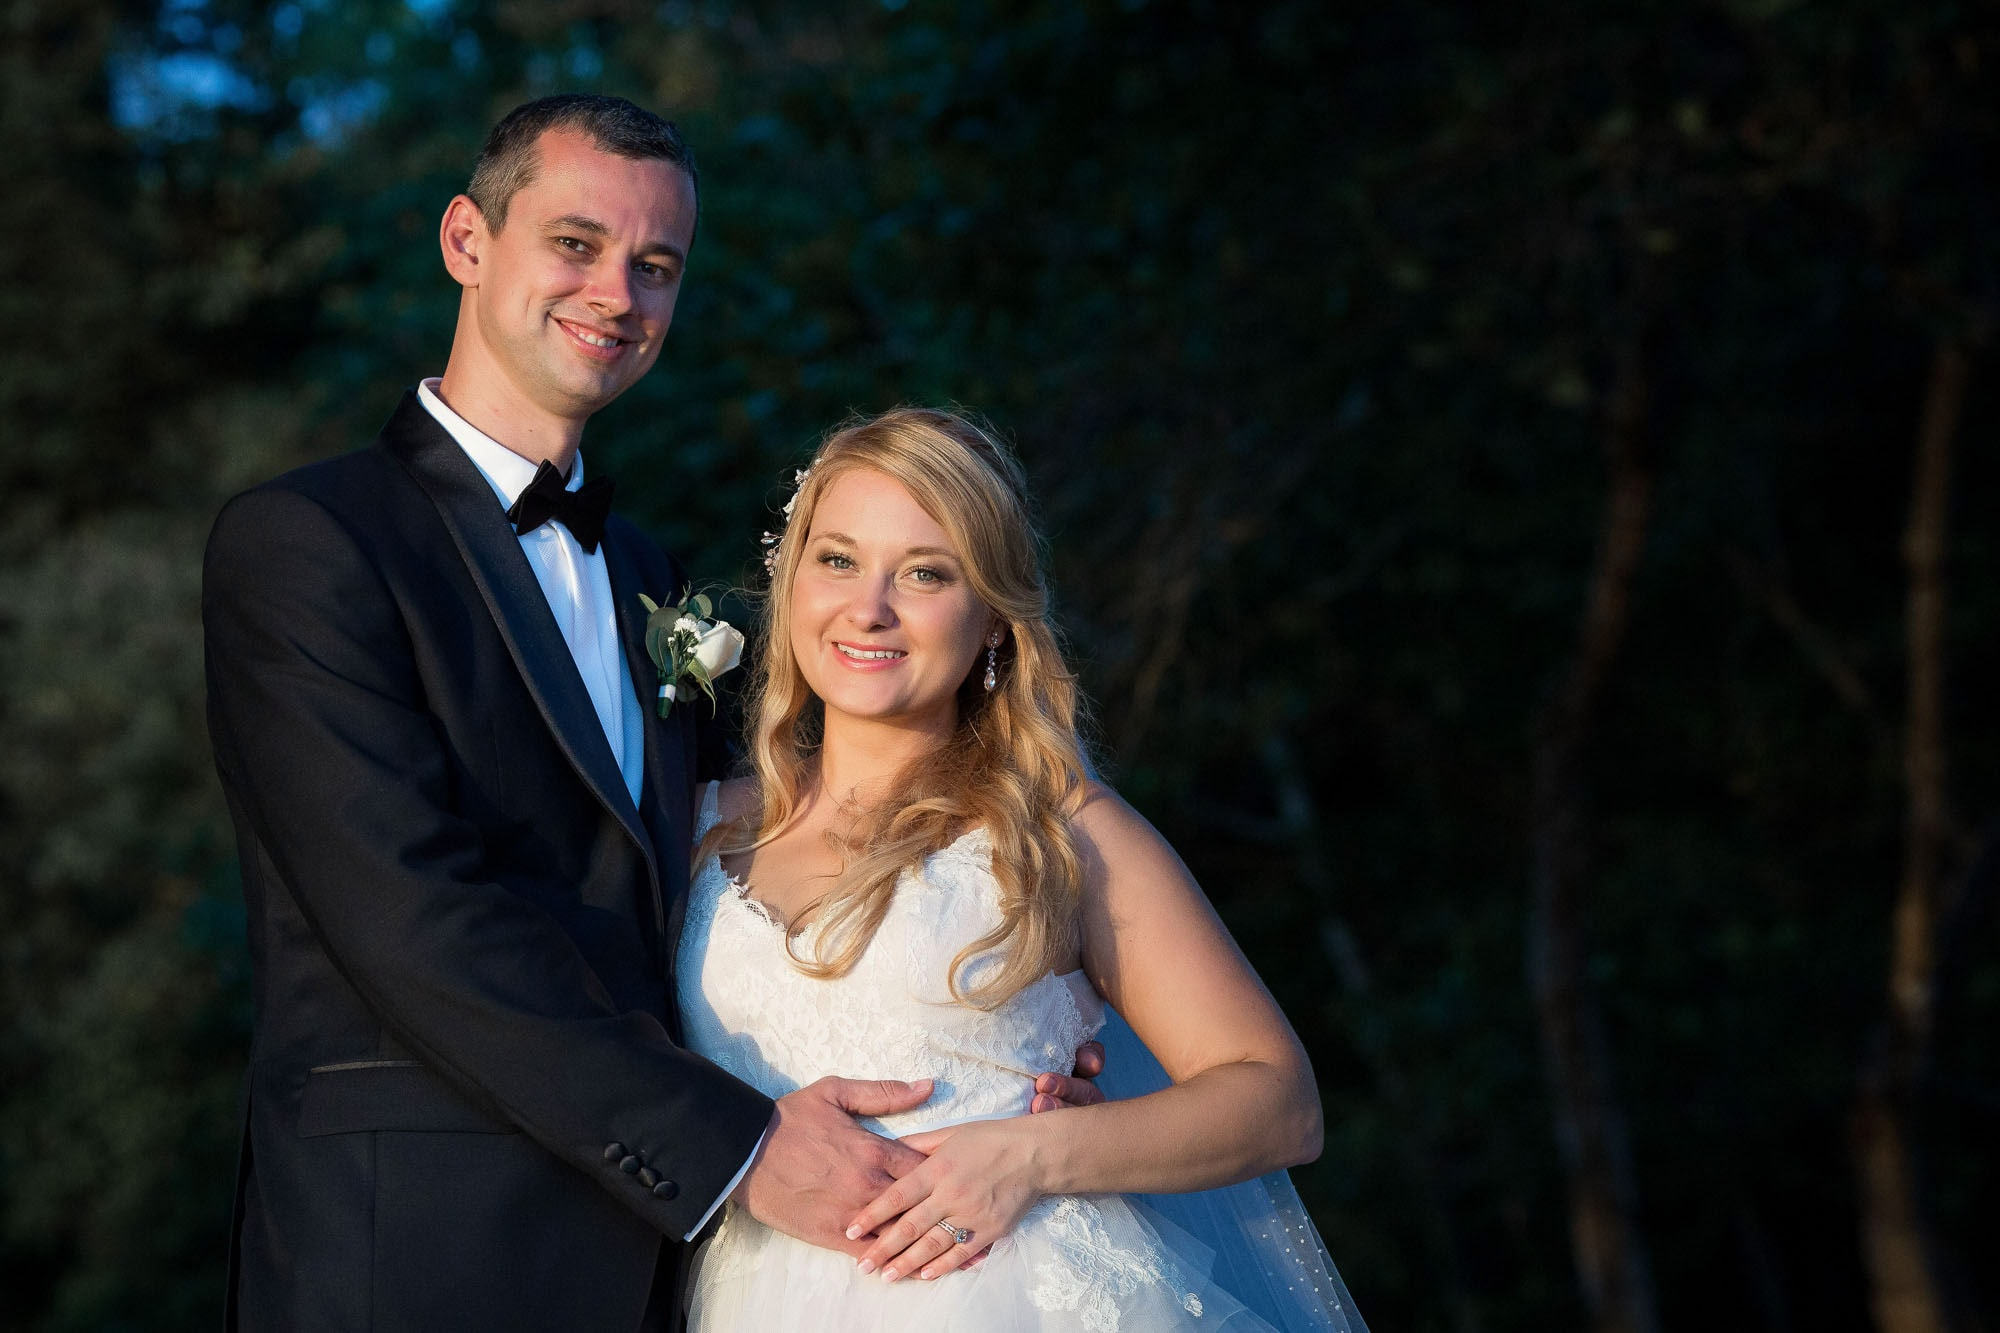 The happy bride and groom pose for a formal bridal portrait